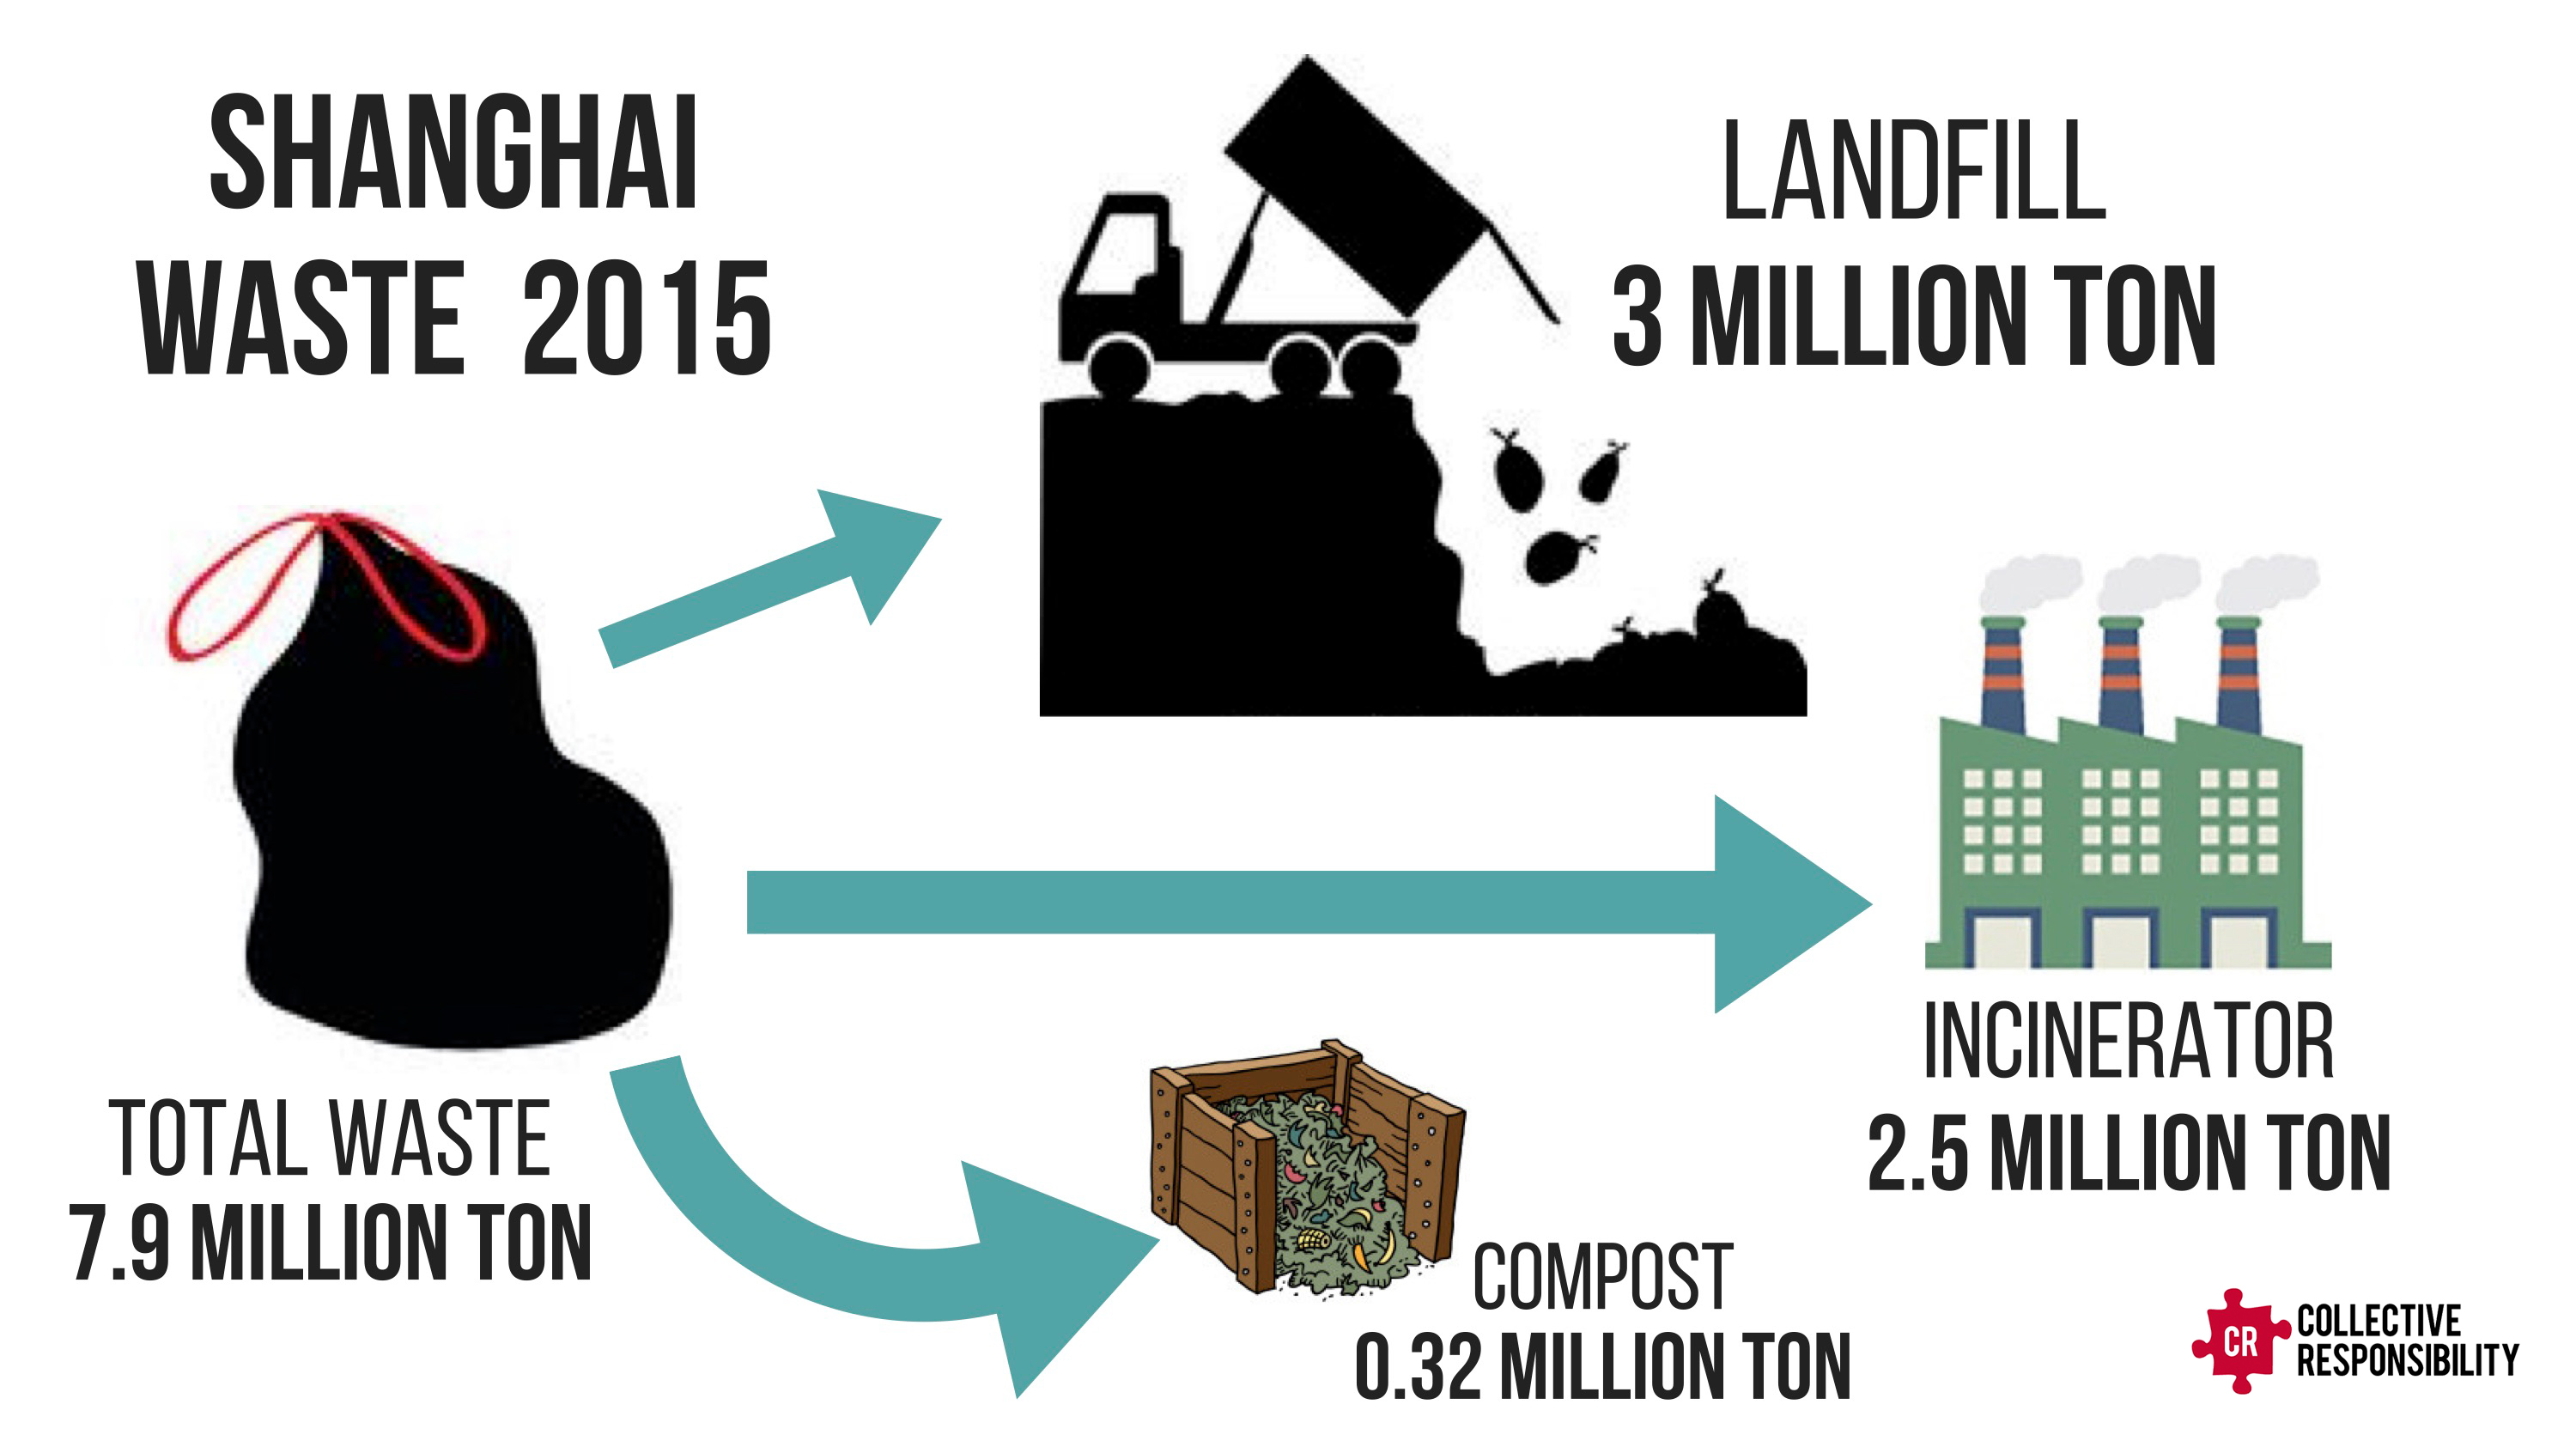 Landfill - Collective Responsibility